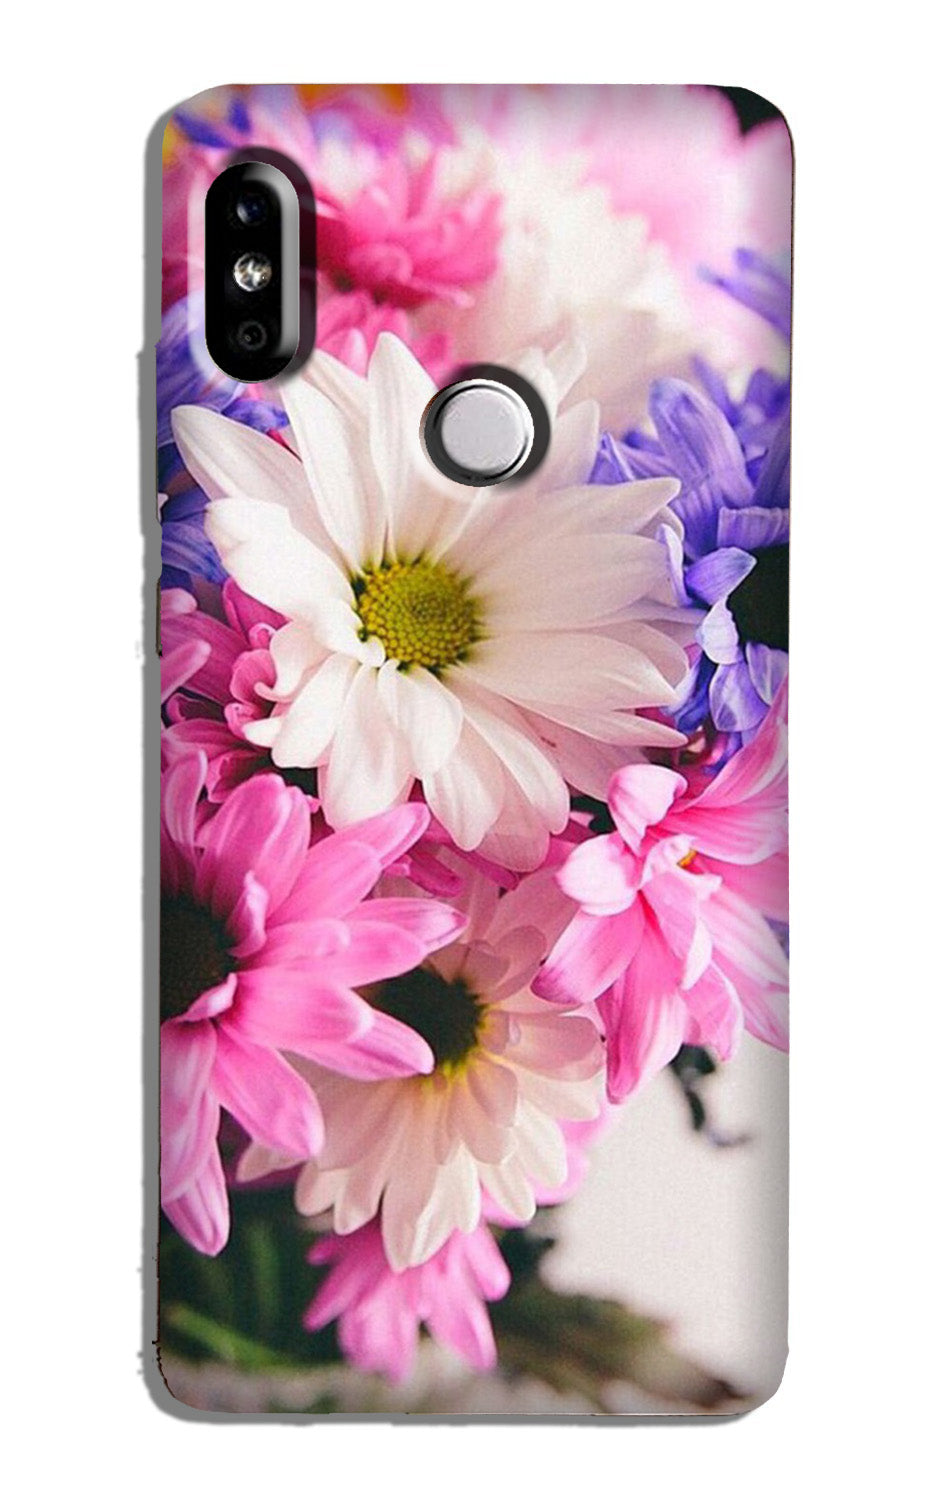 Coloful Daisy Case for Redmi Note 6 Pro